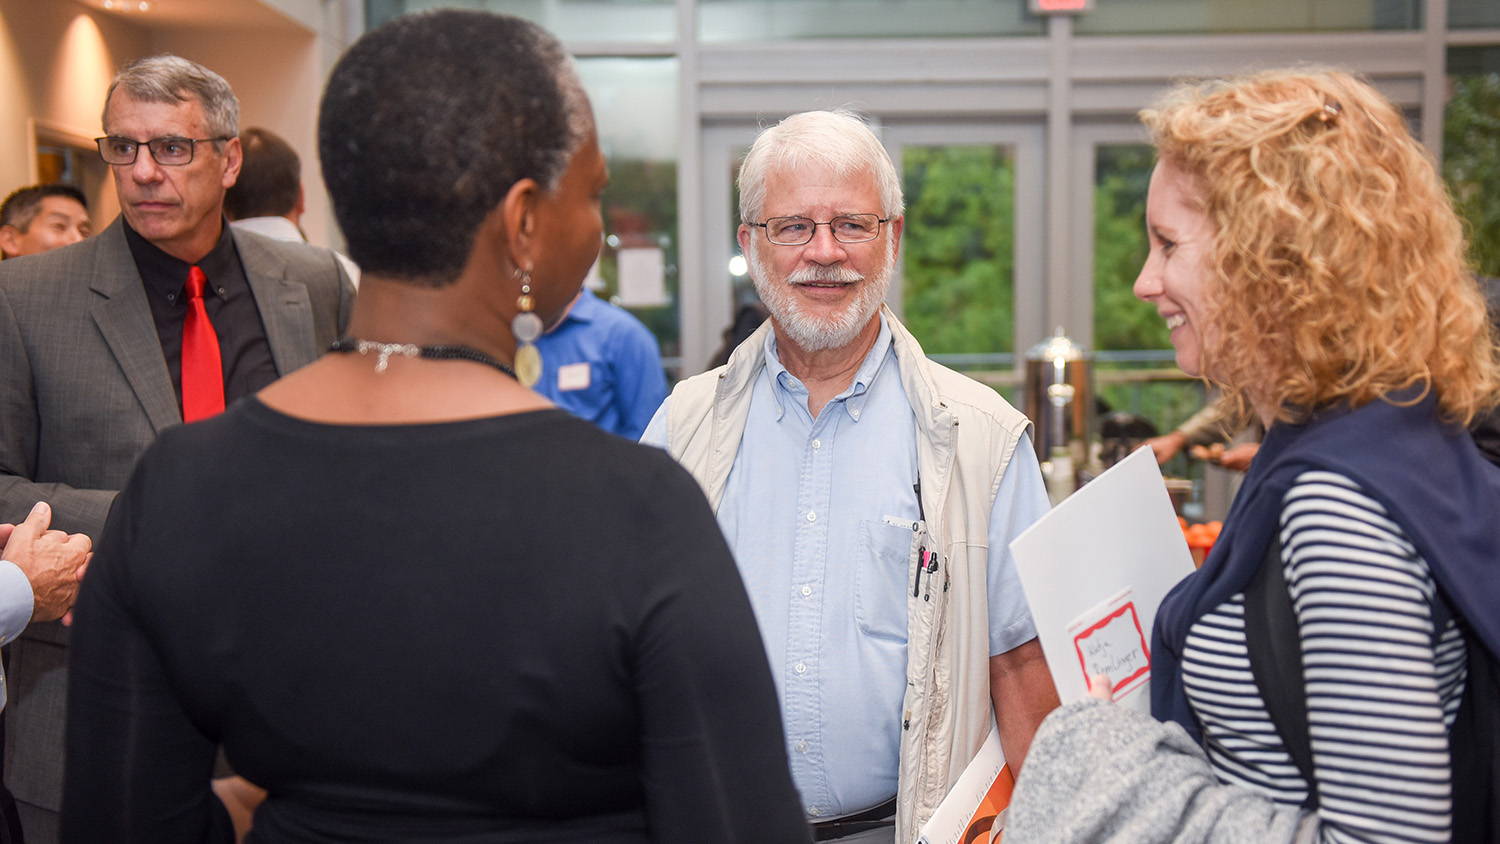 People talk at a reception during the Statistics 75th anniversary celebration